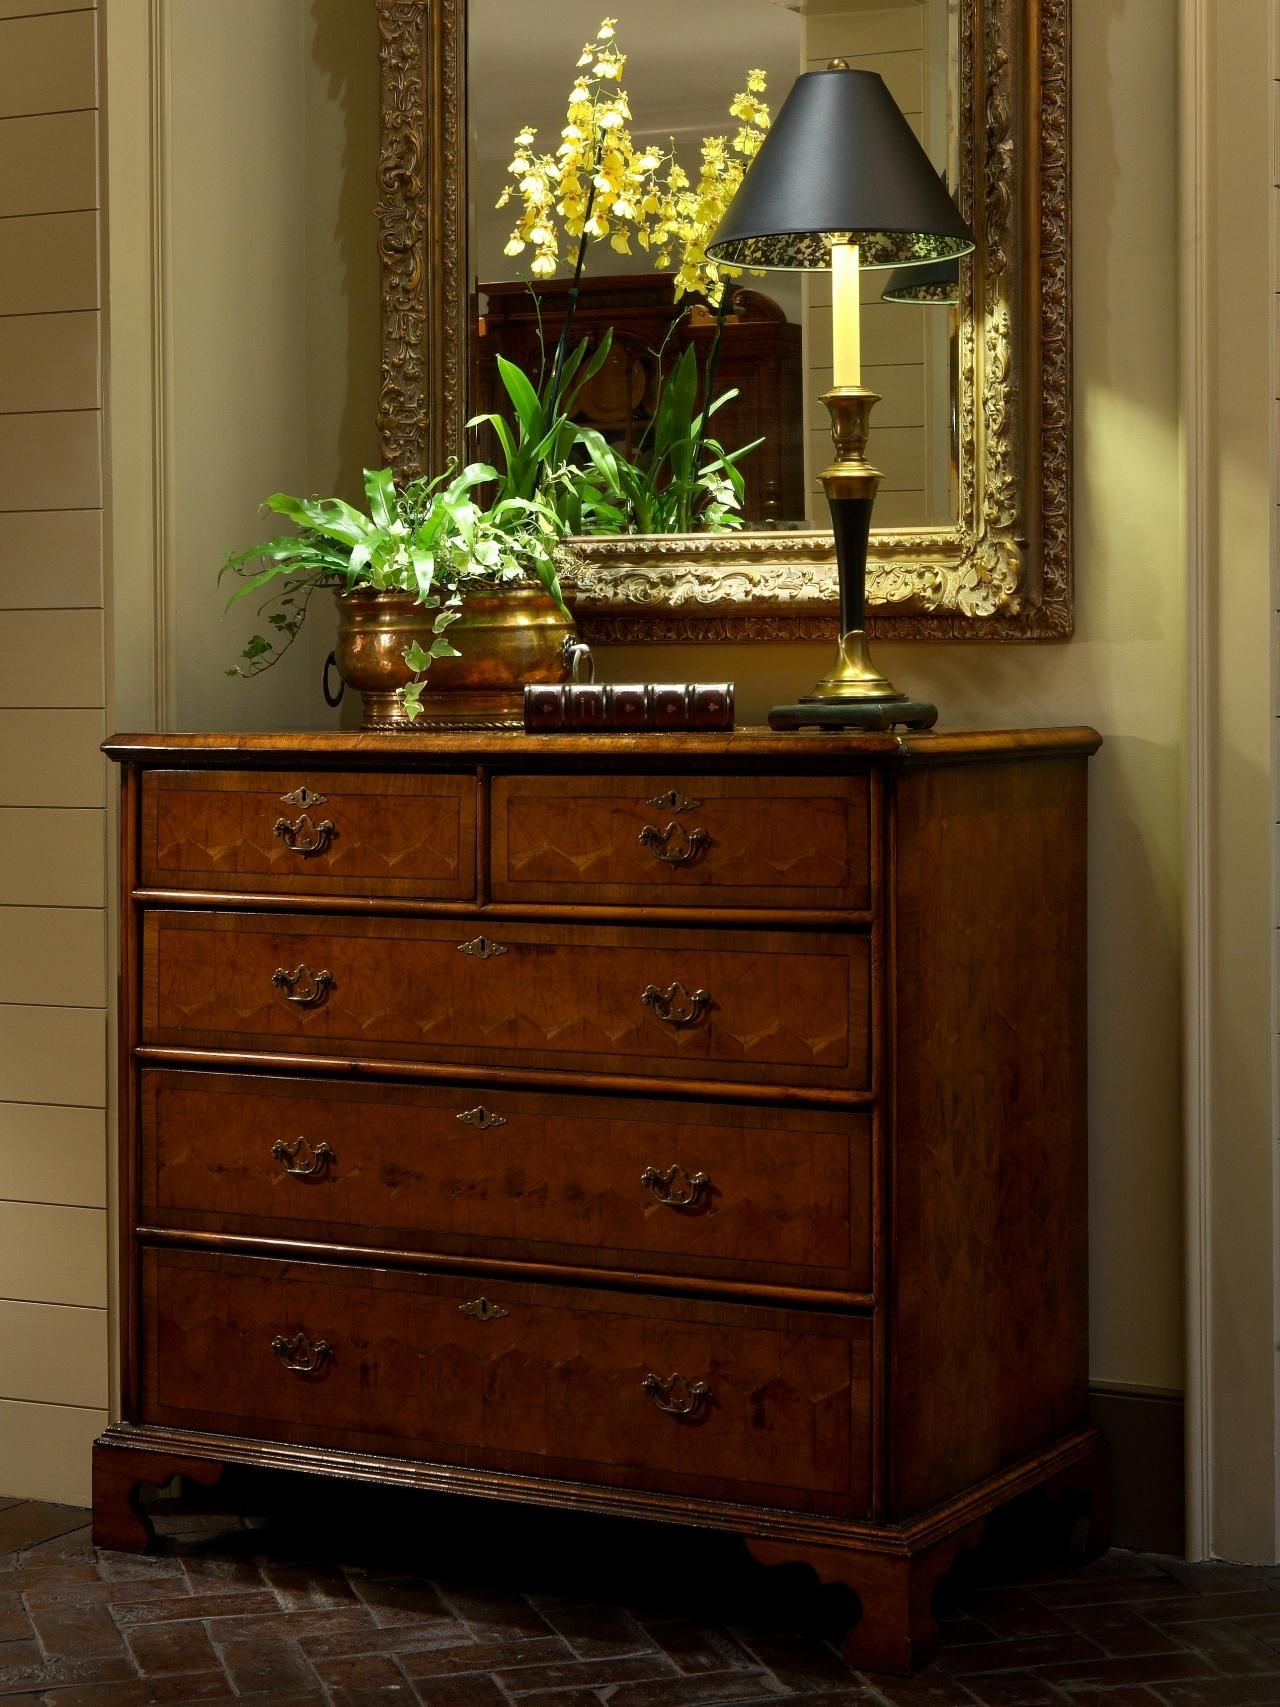 living room chest of drawers ideas on